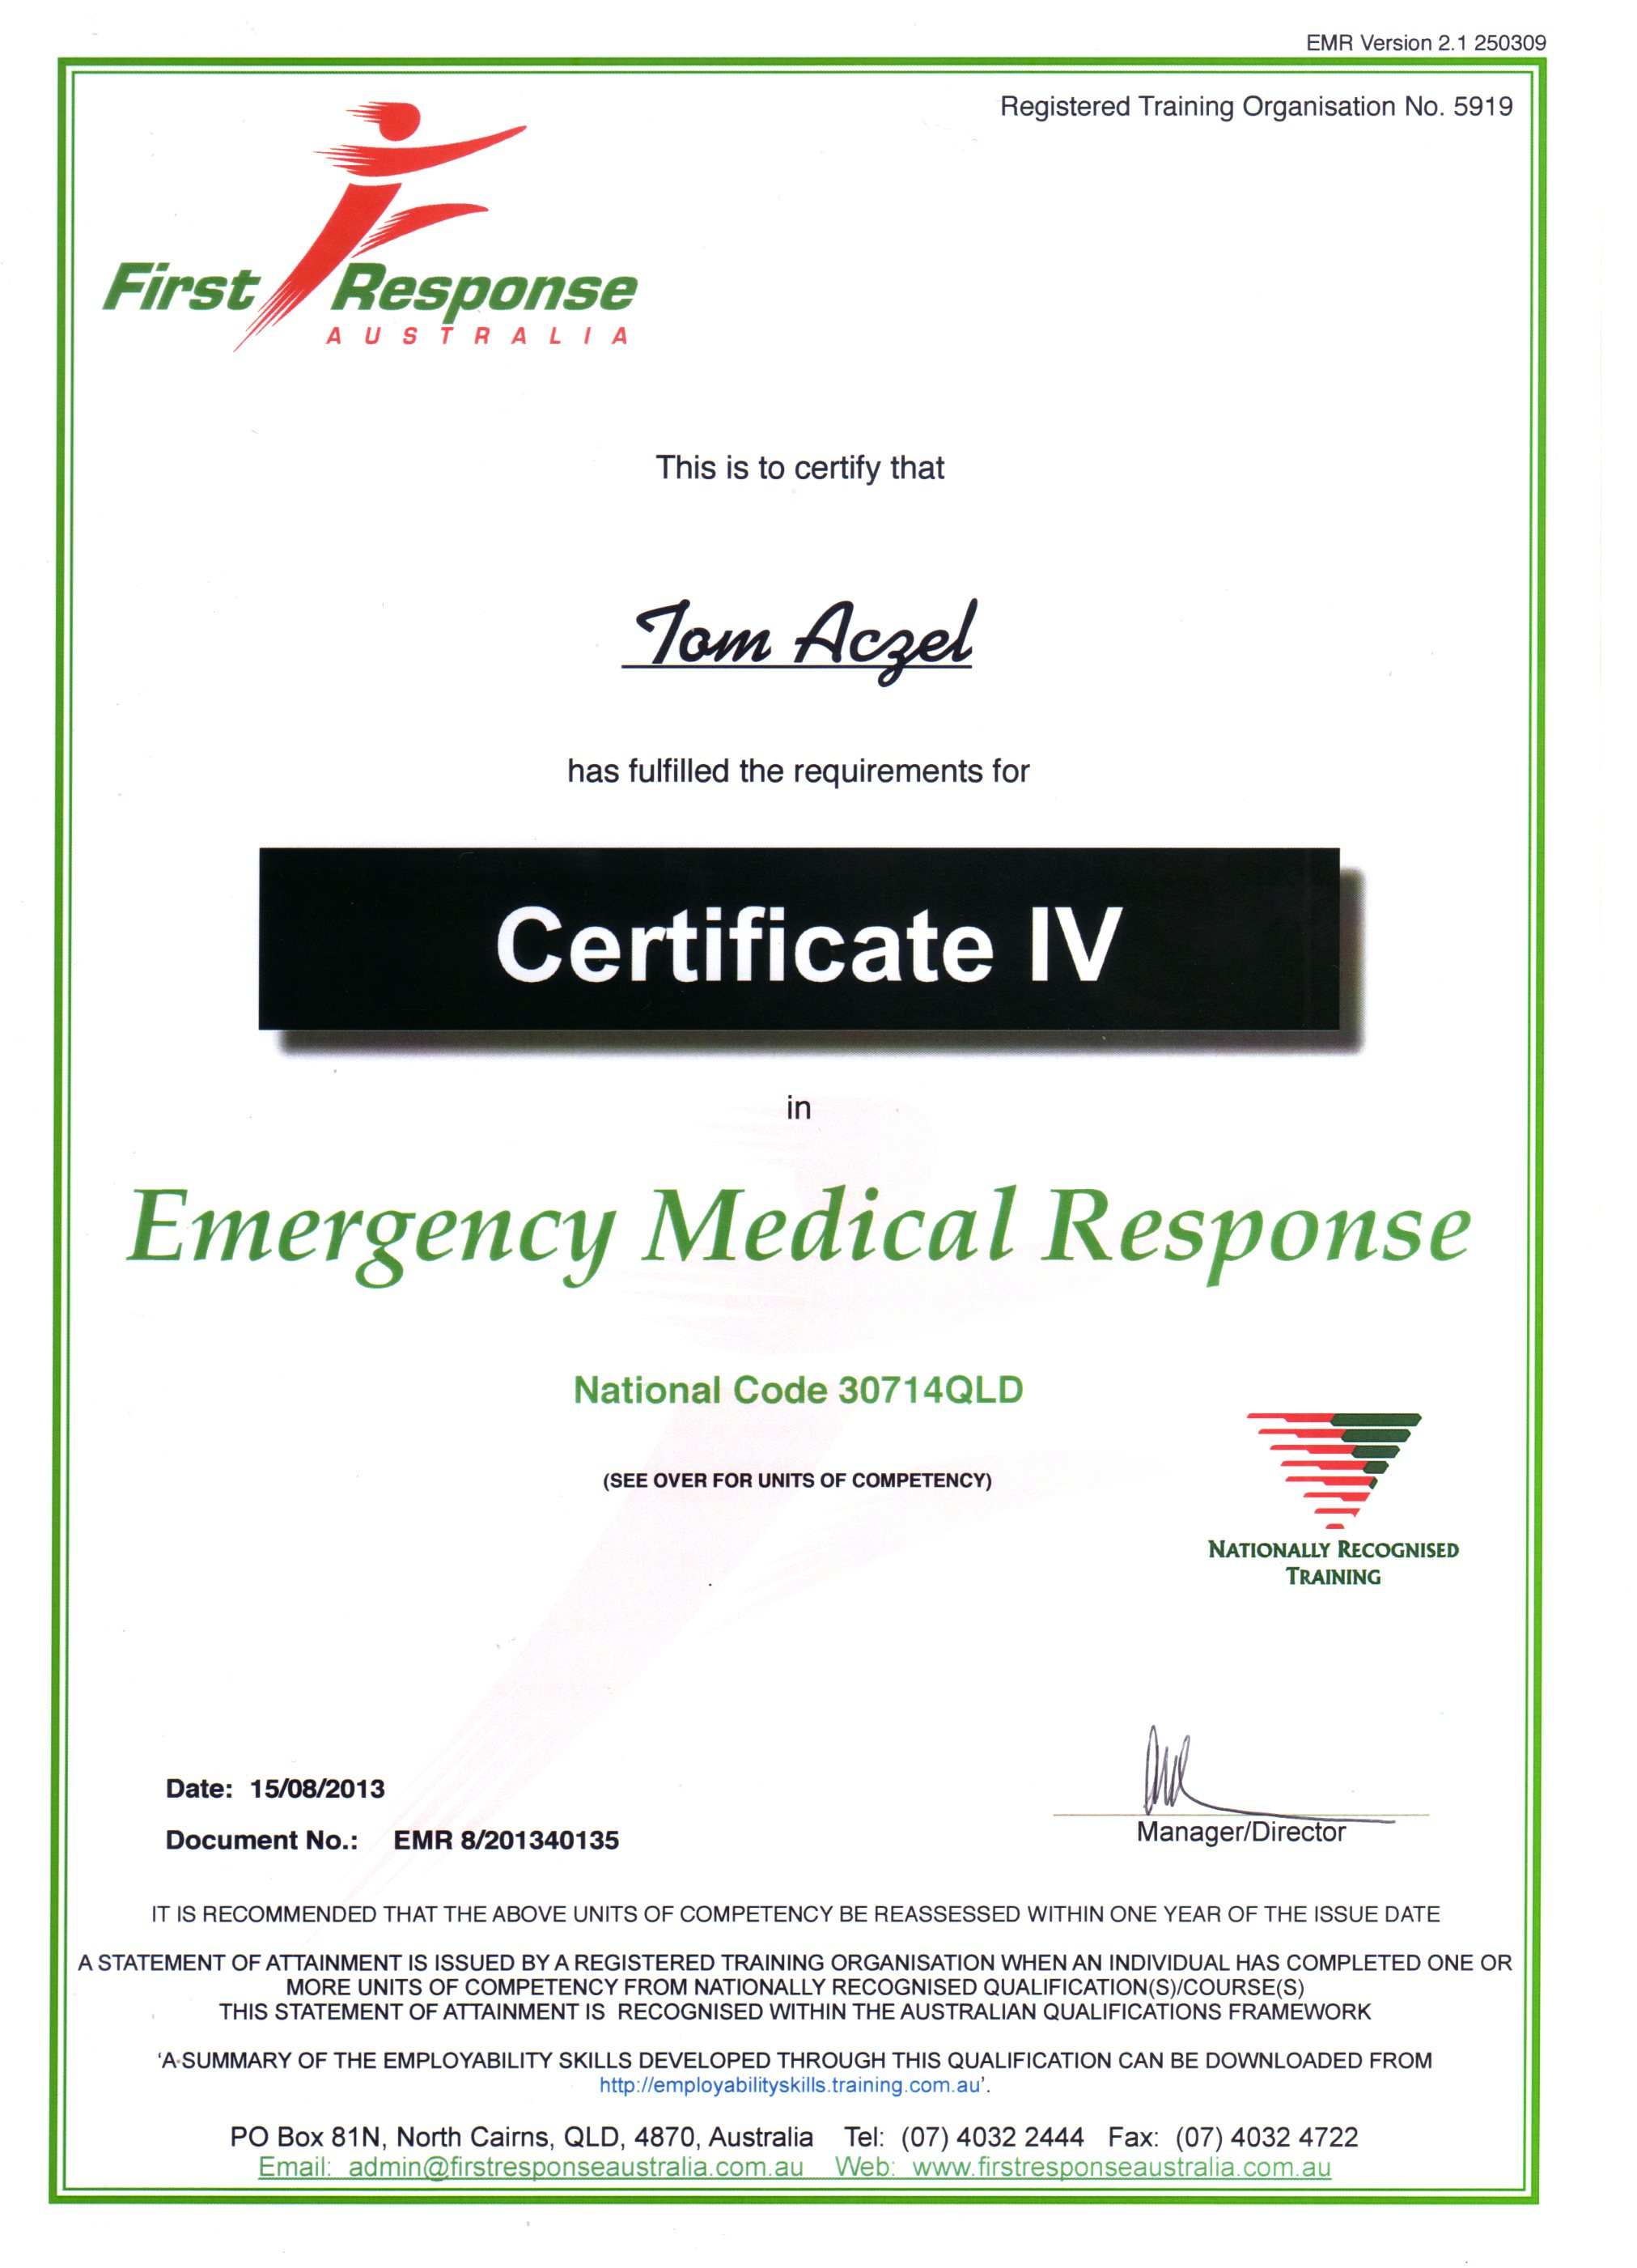 About Tom Aczel - Emergency Medical Response